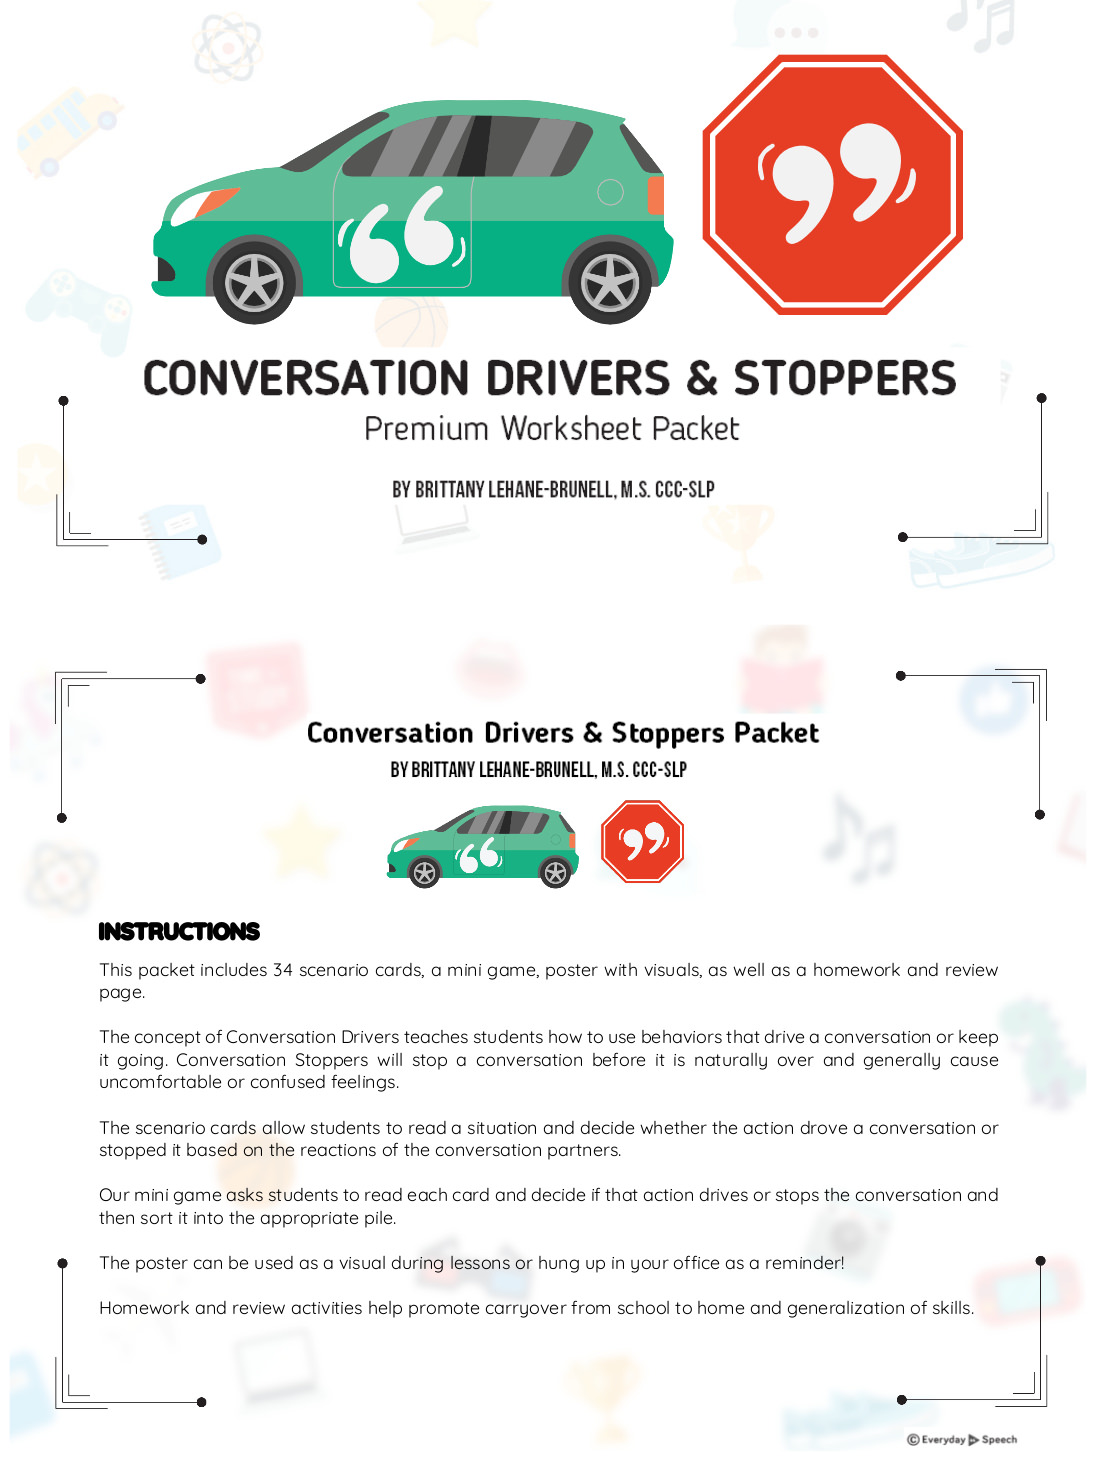 Conversation Drivers & Stoppers Premium Packet